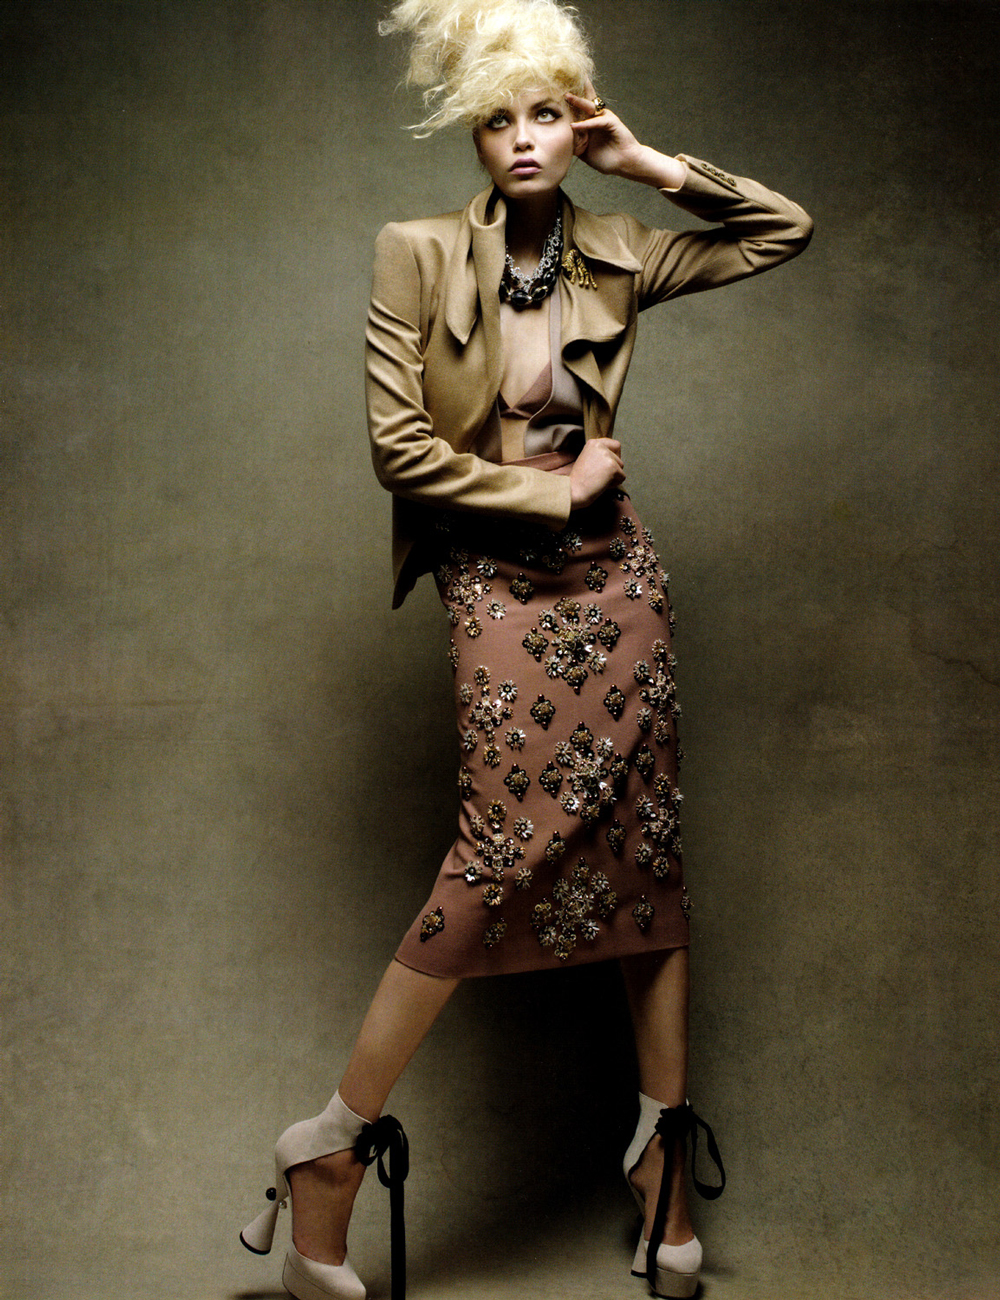 Natasha Poly wearing Louis Vuitton Fall/Winter 2009 shoes (and Miu Miu skirt) photographed by Patrick Demarchelier for Vogue China August 2009 via fashioned by love british fashion blog